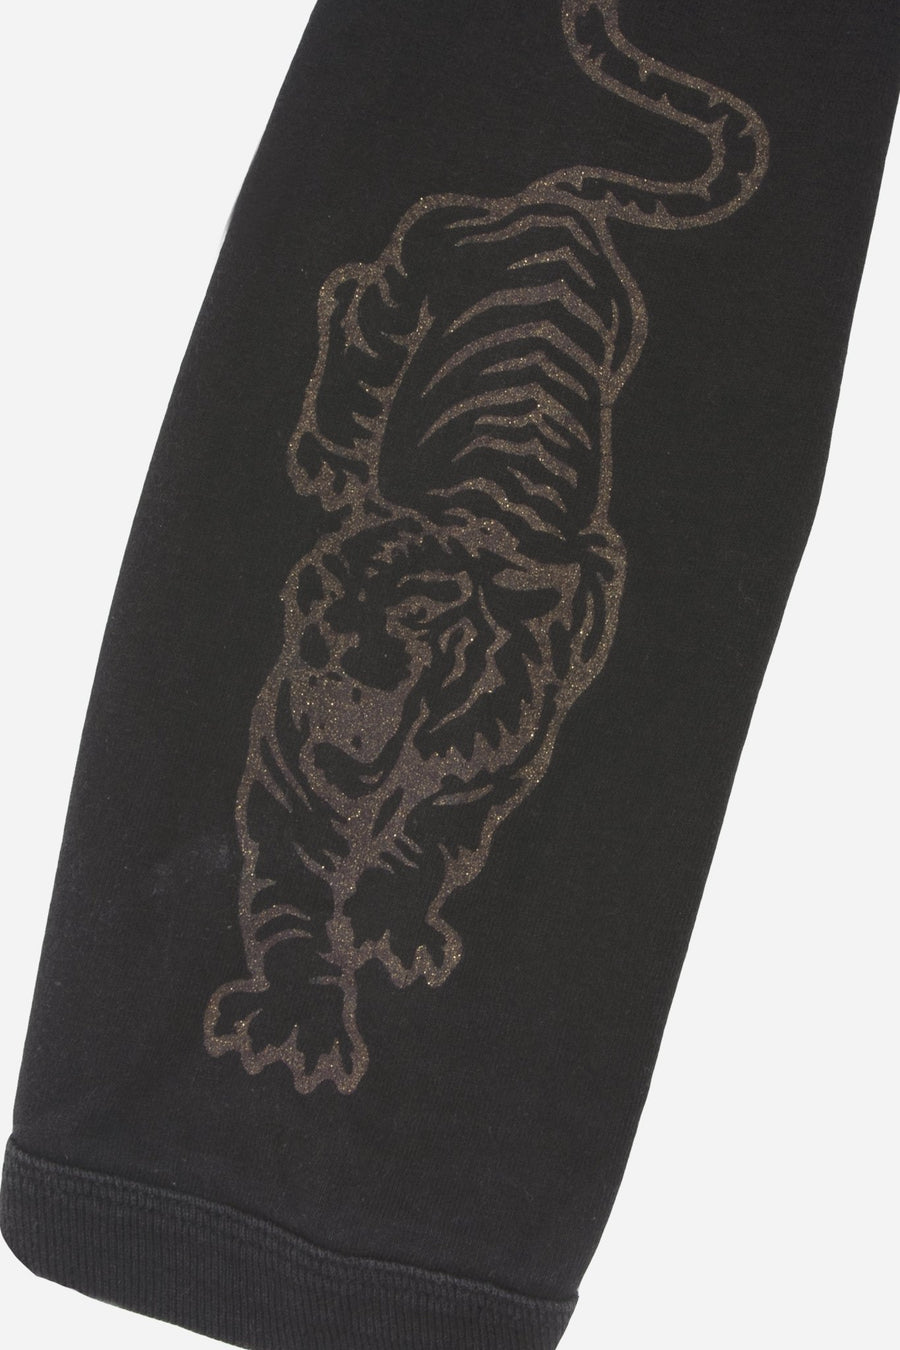 T-shirt Stüssy Tiger Year Edition - WASTED PARIS